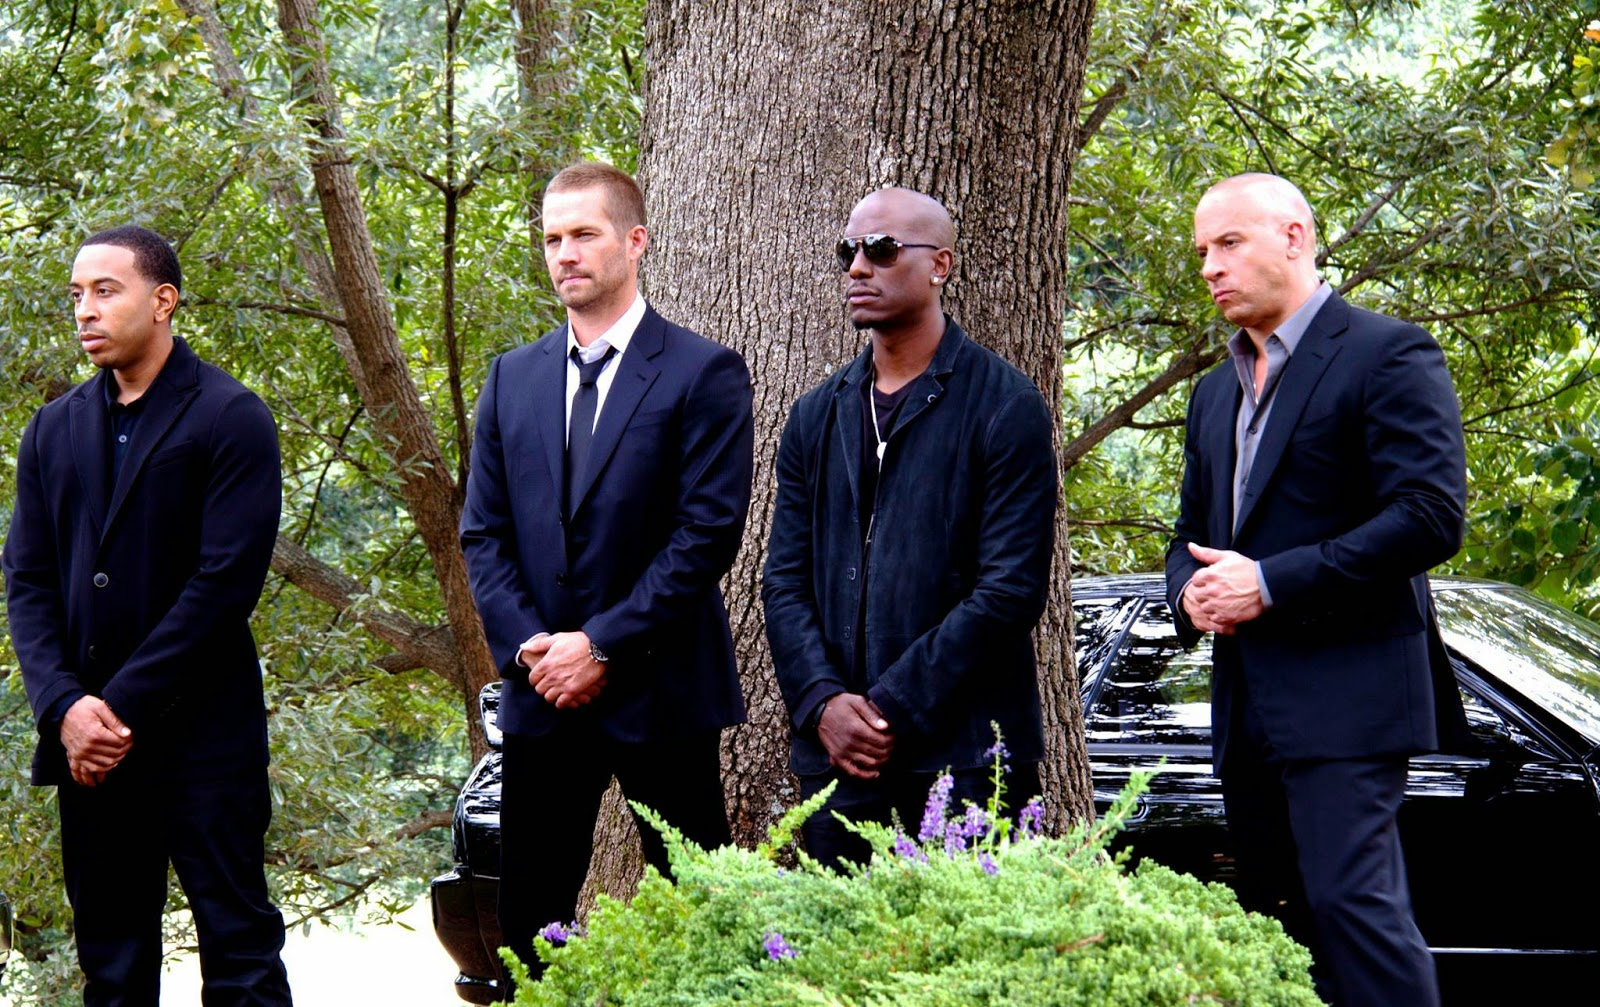 Toretto with family, attending funeral, Paul Walker, Vin Diesel, Fast & Furious 7, Directed by James Wan